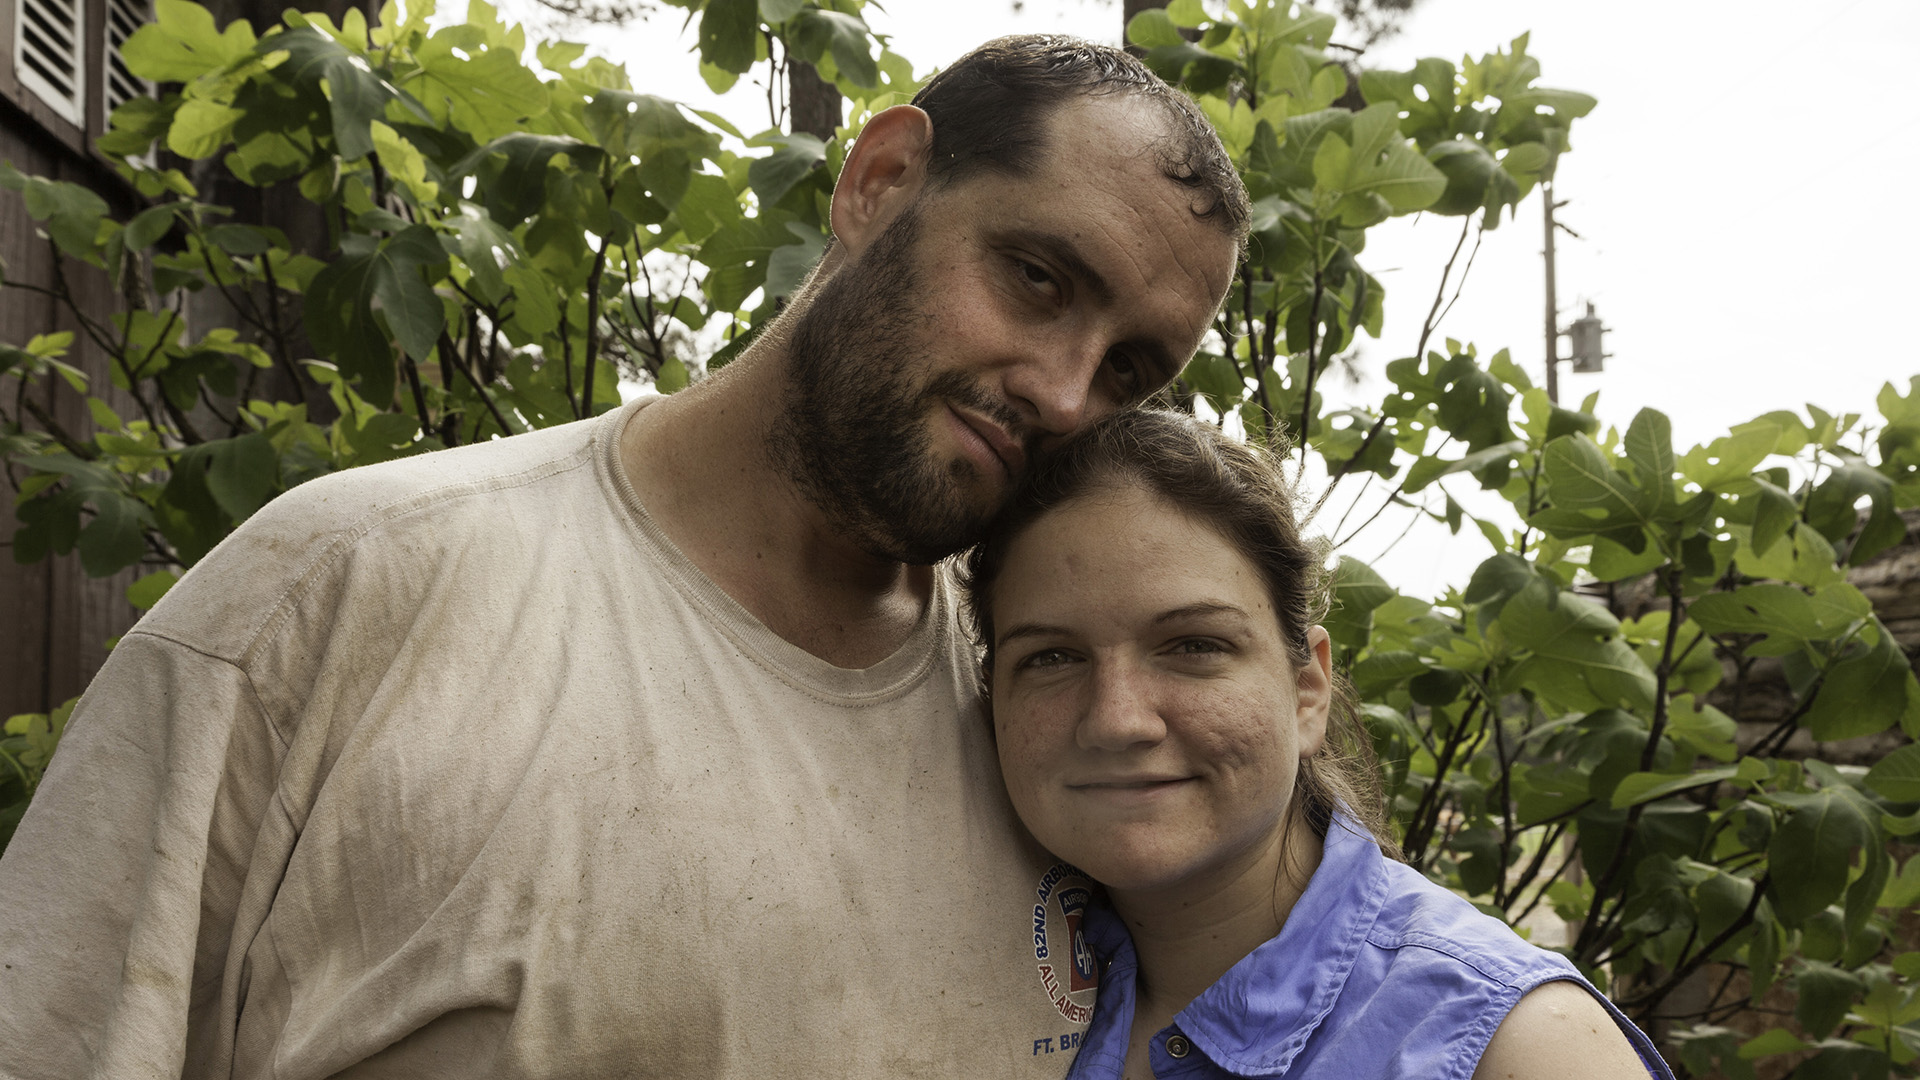 Alex Sutton, and his fiancé, Jessica Silberhorn, on their farm in Moore County, North Carolina in the spring of 2012. Alex met Jessica two years earlier by responding to her Craigslist ad looking for a fishing buddy.